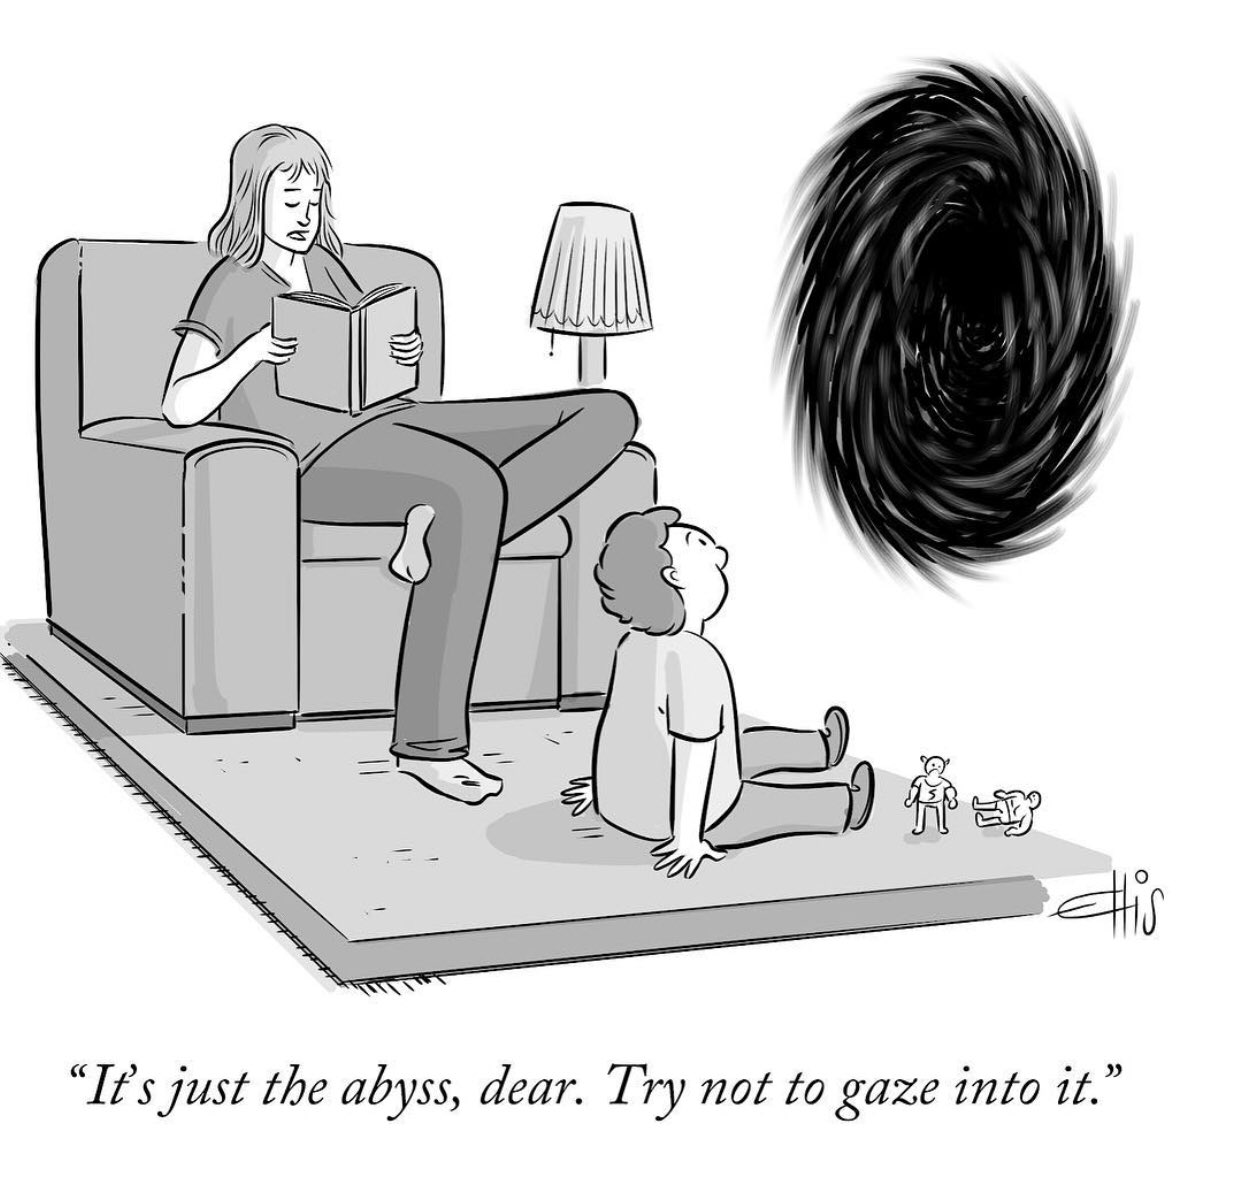 Cartoon by Ellis Rosen of child looking into abyss in living room, mother says 'it's just the abyss dear, try not to gaze into it'